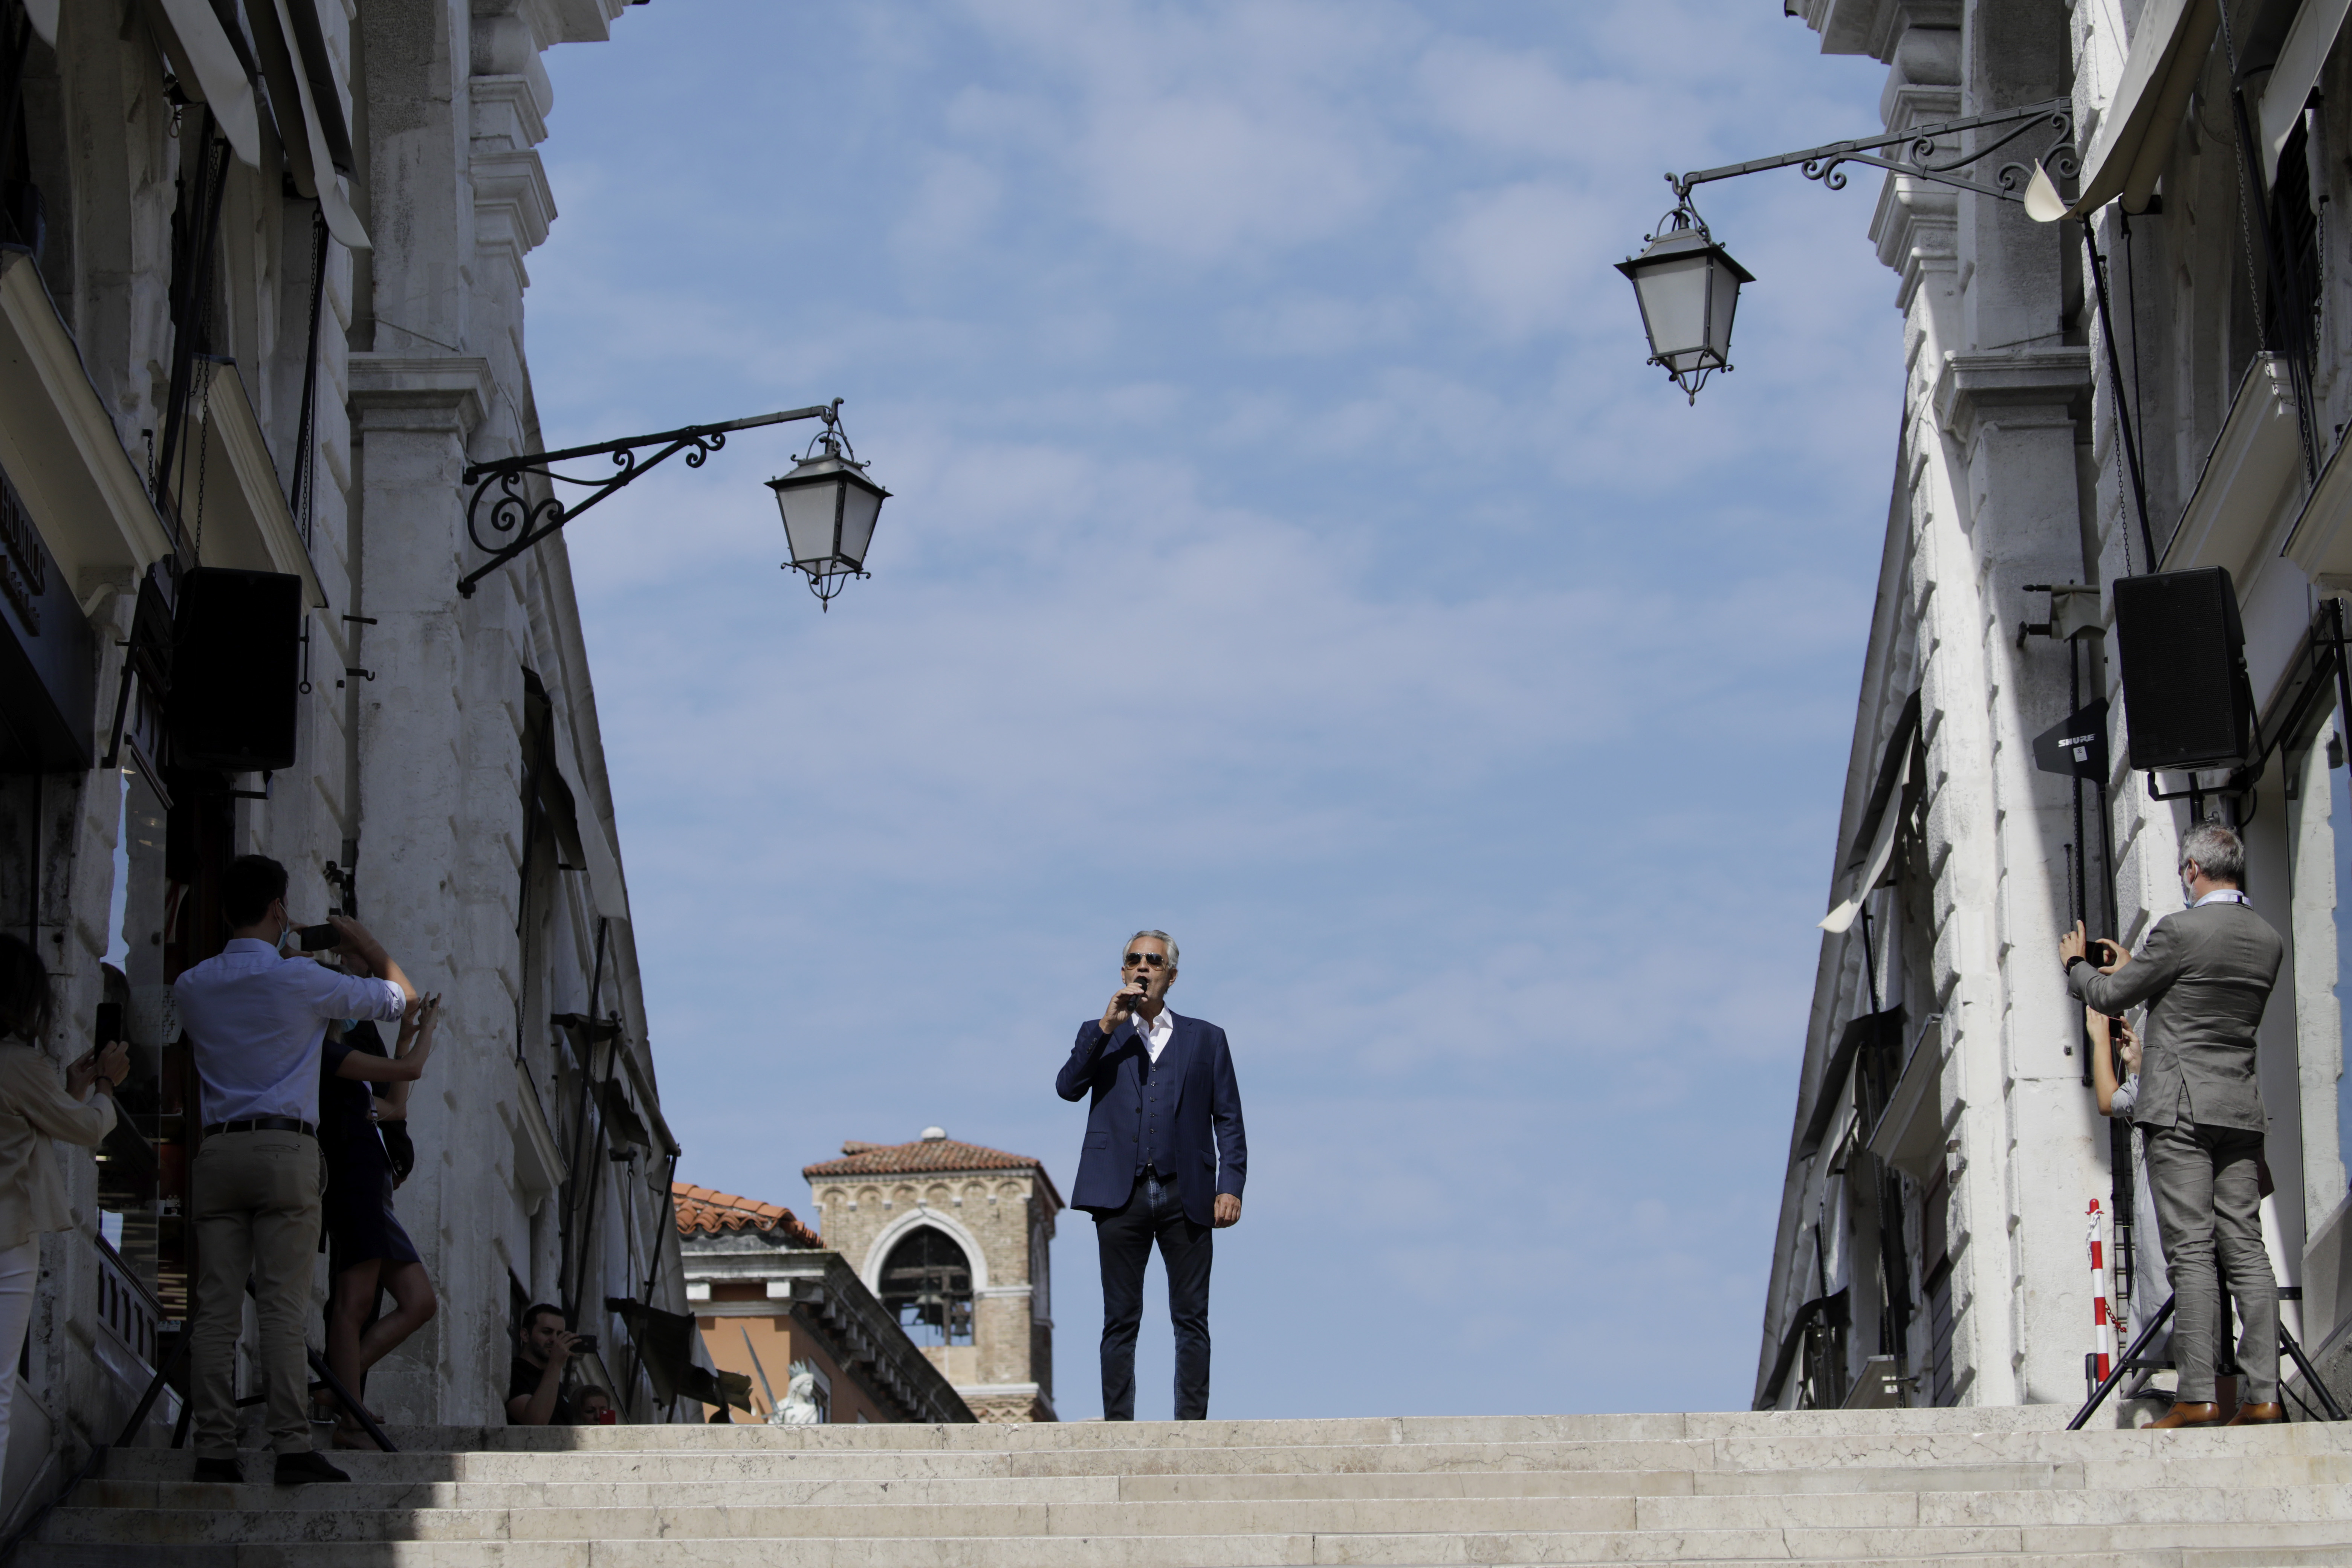 VENICE, ITALY - SEPTEMBER 07: attend the Inauguration of Rialto Bridge after OTB Restoration Works on September 07, 2021 in Venice, Italy. (Photo by John Phillips/Getty Images for OTB)